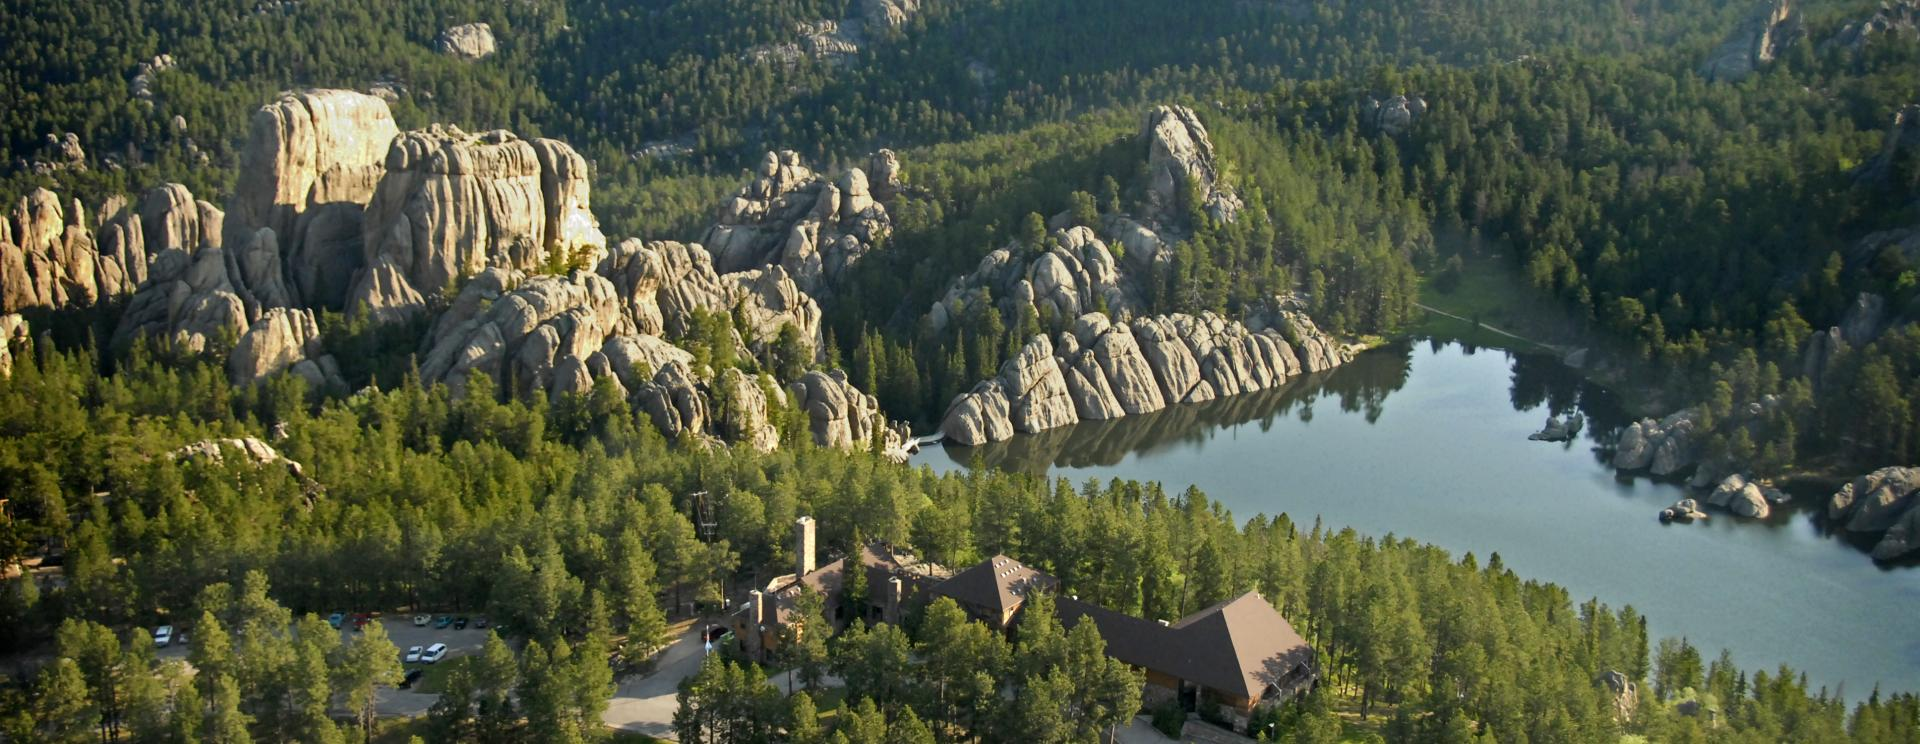 Sylvan Lake Lodge at Custer State Park